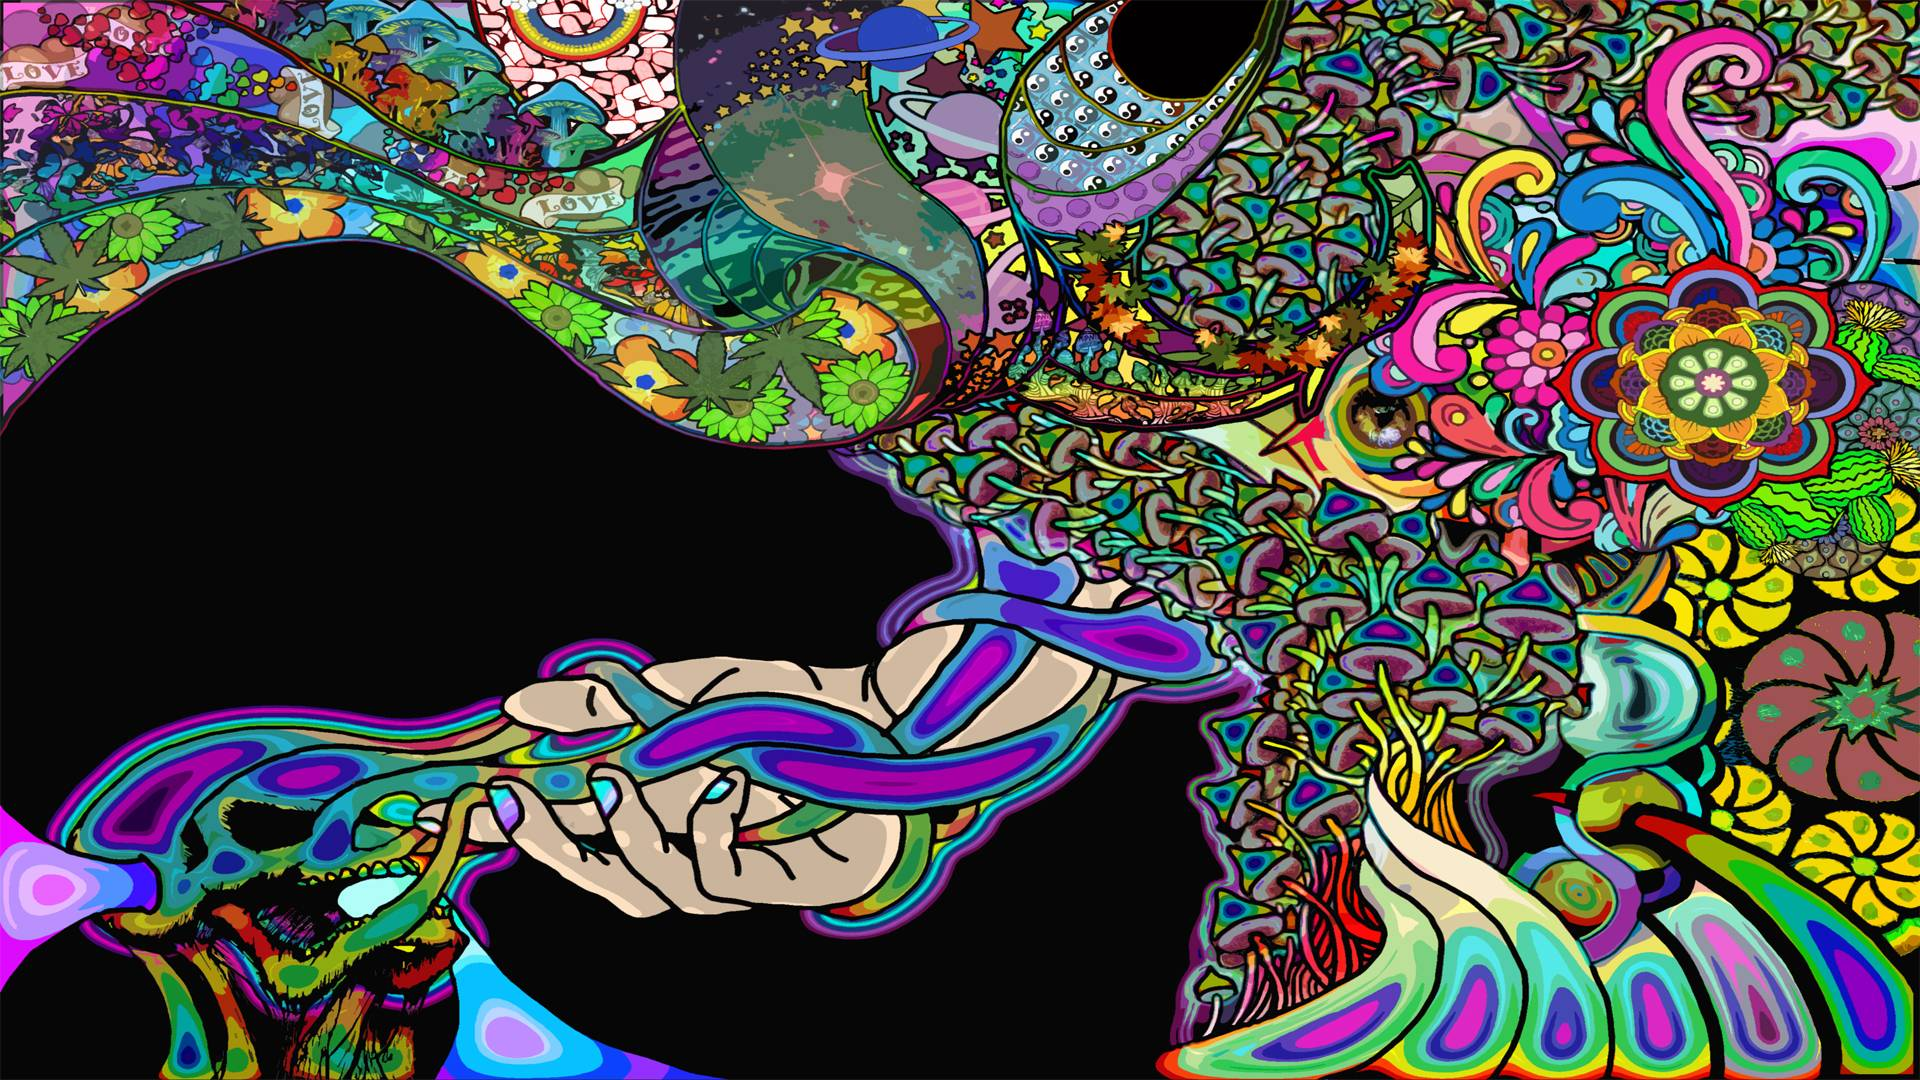 Psychodilic clipart picture free library Psychedelic art - A combination of freehand drawing and ... picture free library